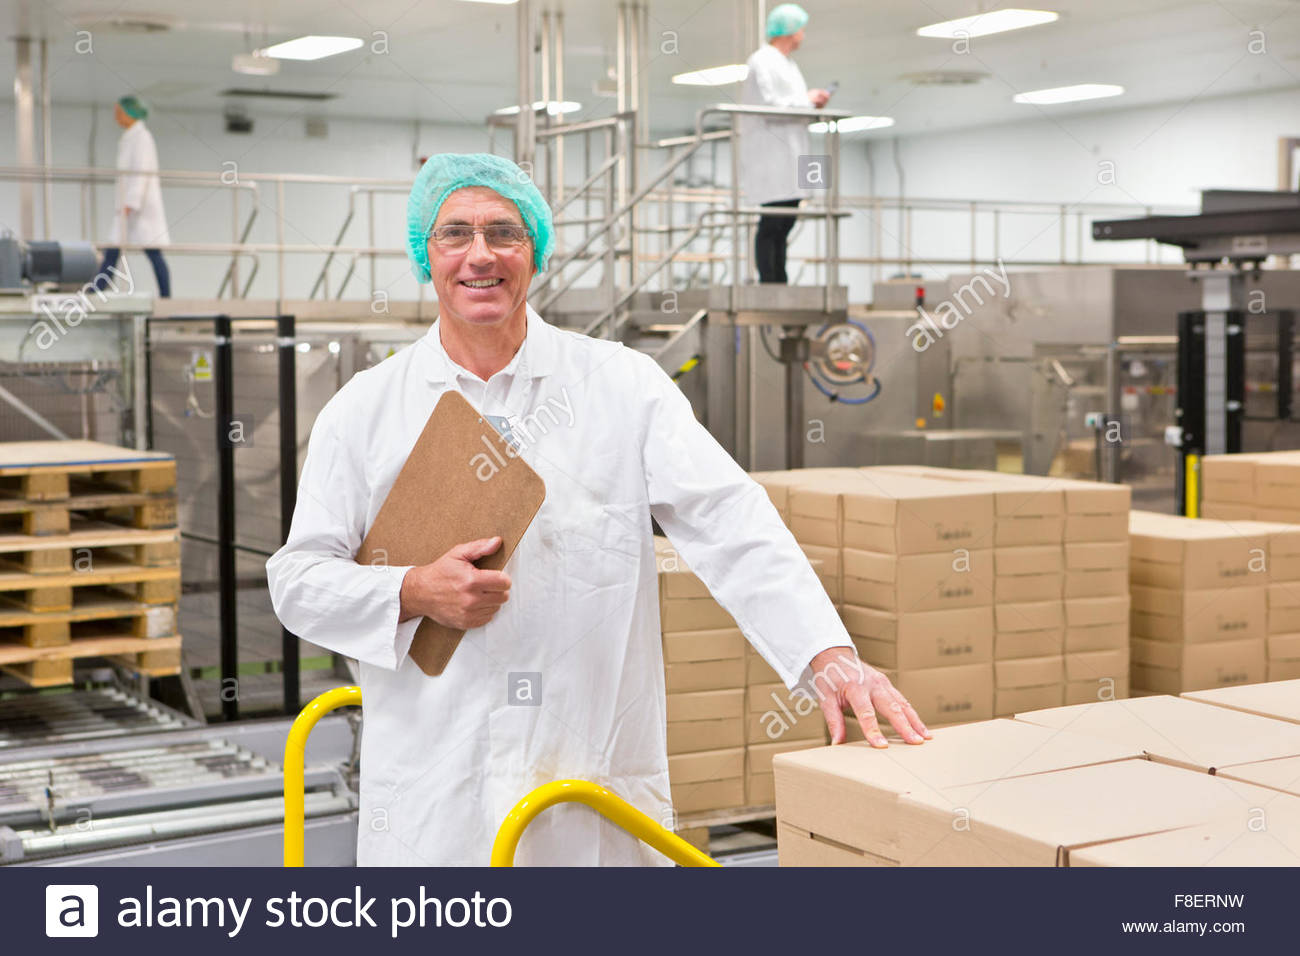 Portrait smiling worker with clipboard at food packaging production line - Stock Image